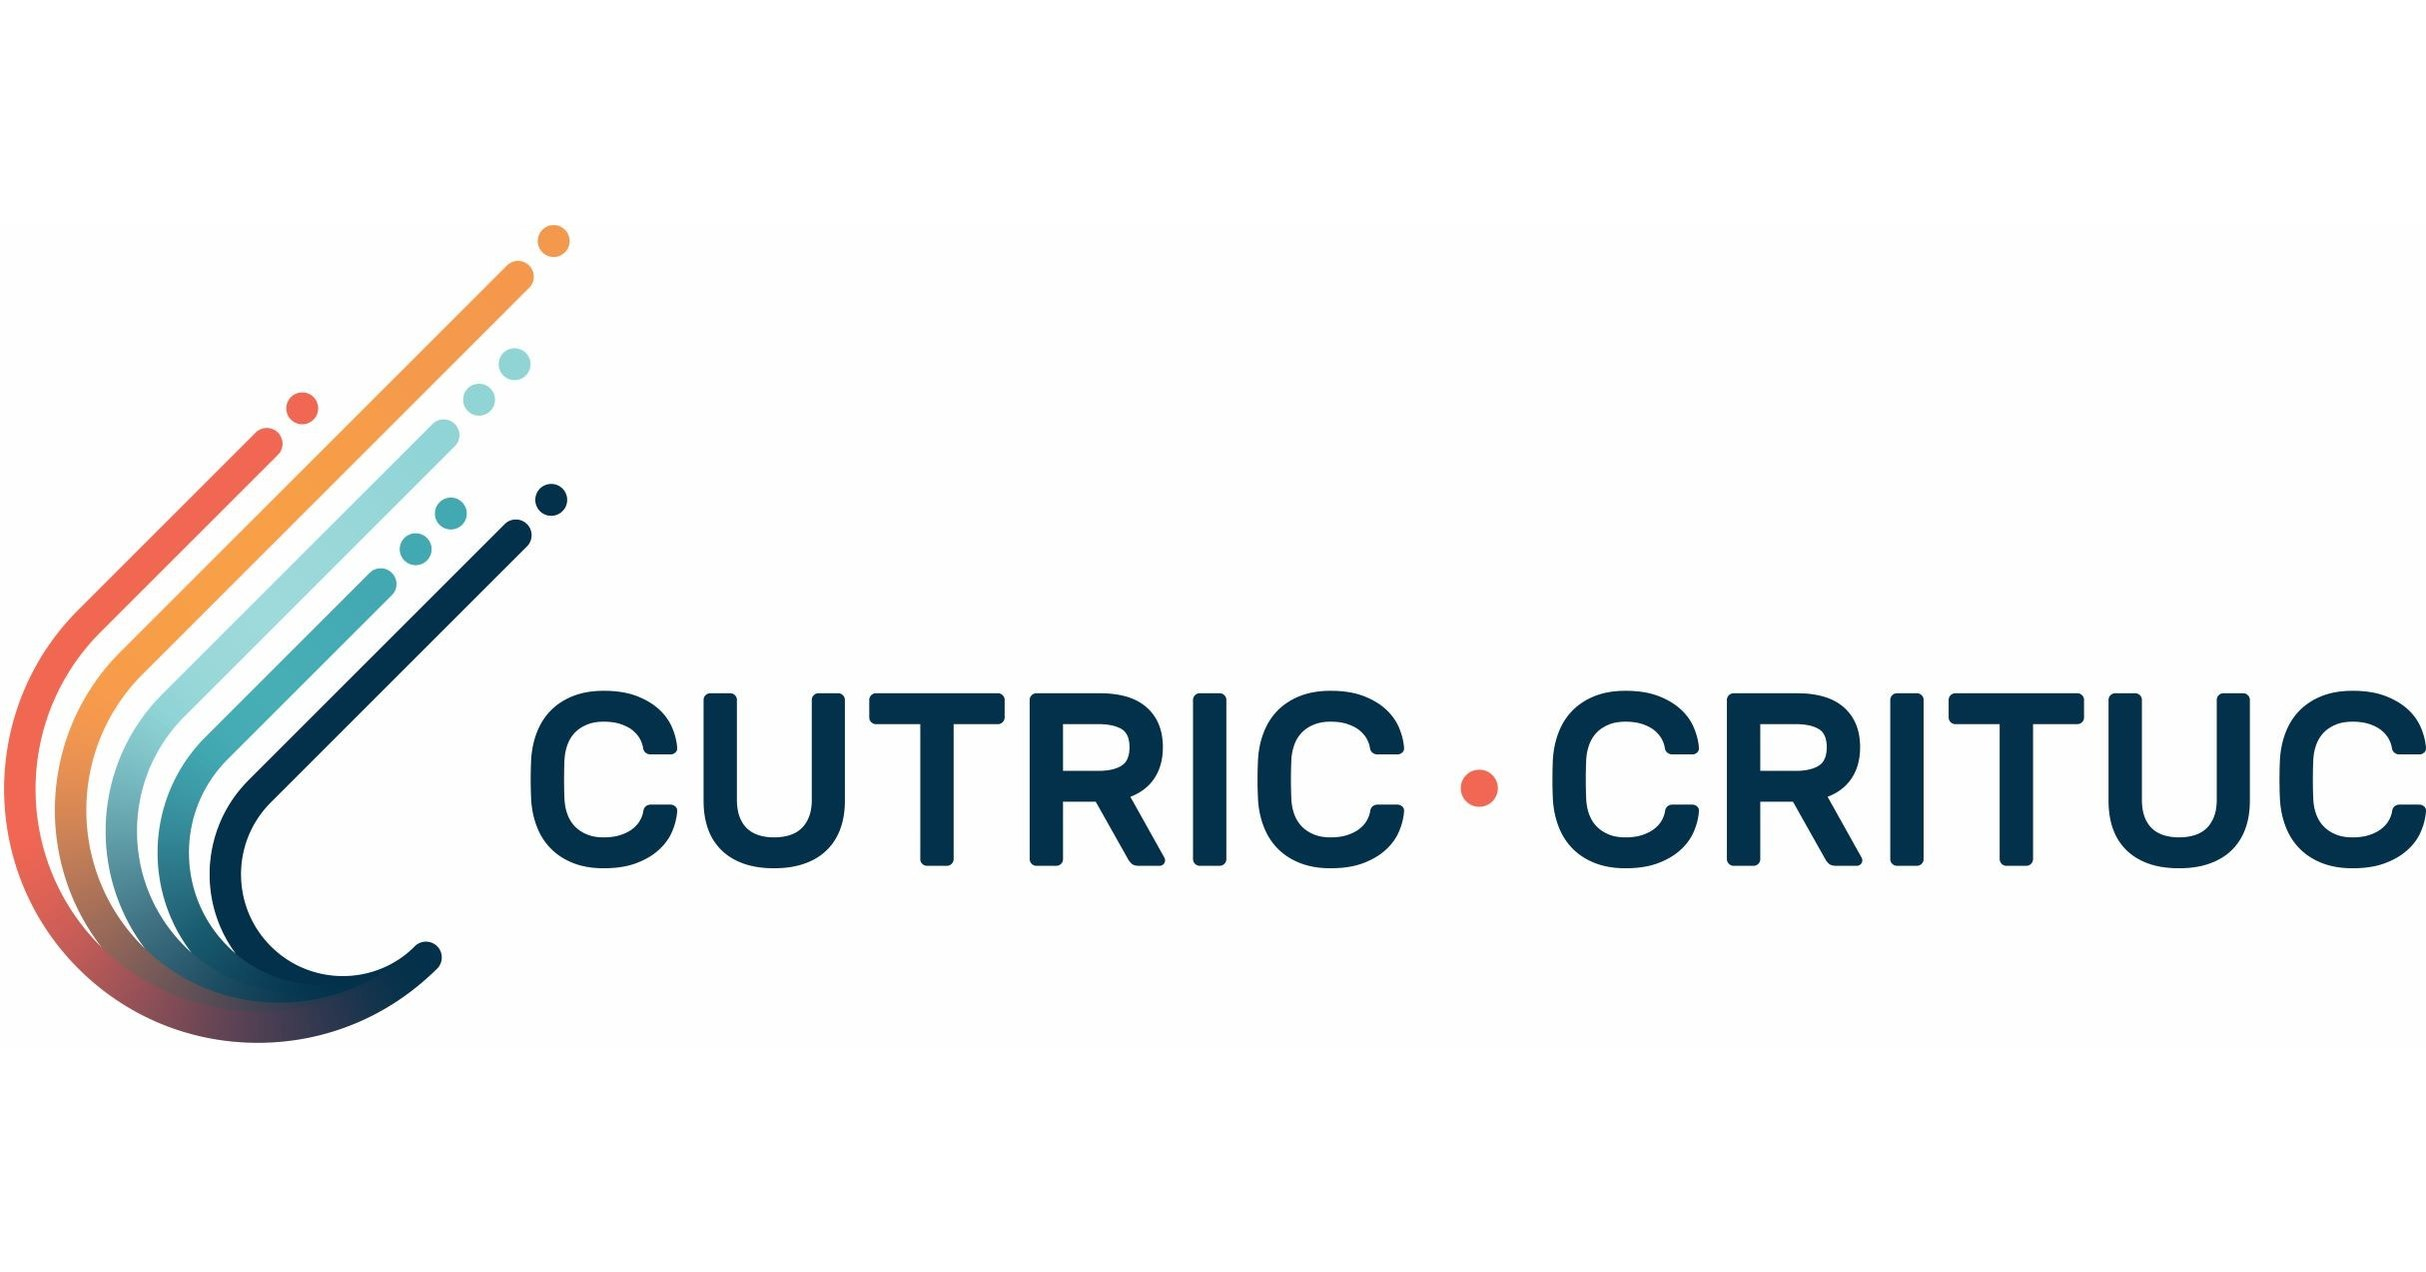 Canadian Urban Transit Research and Innovation Consortium (CUTRIC) logo